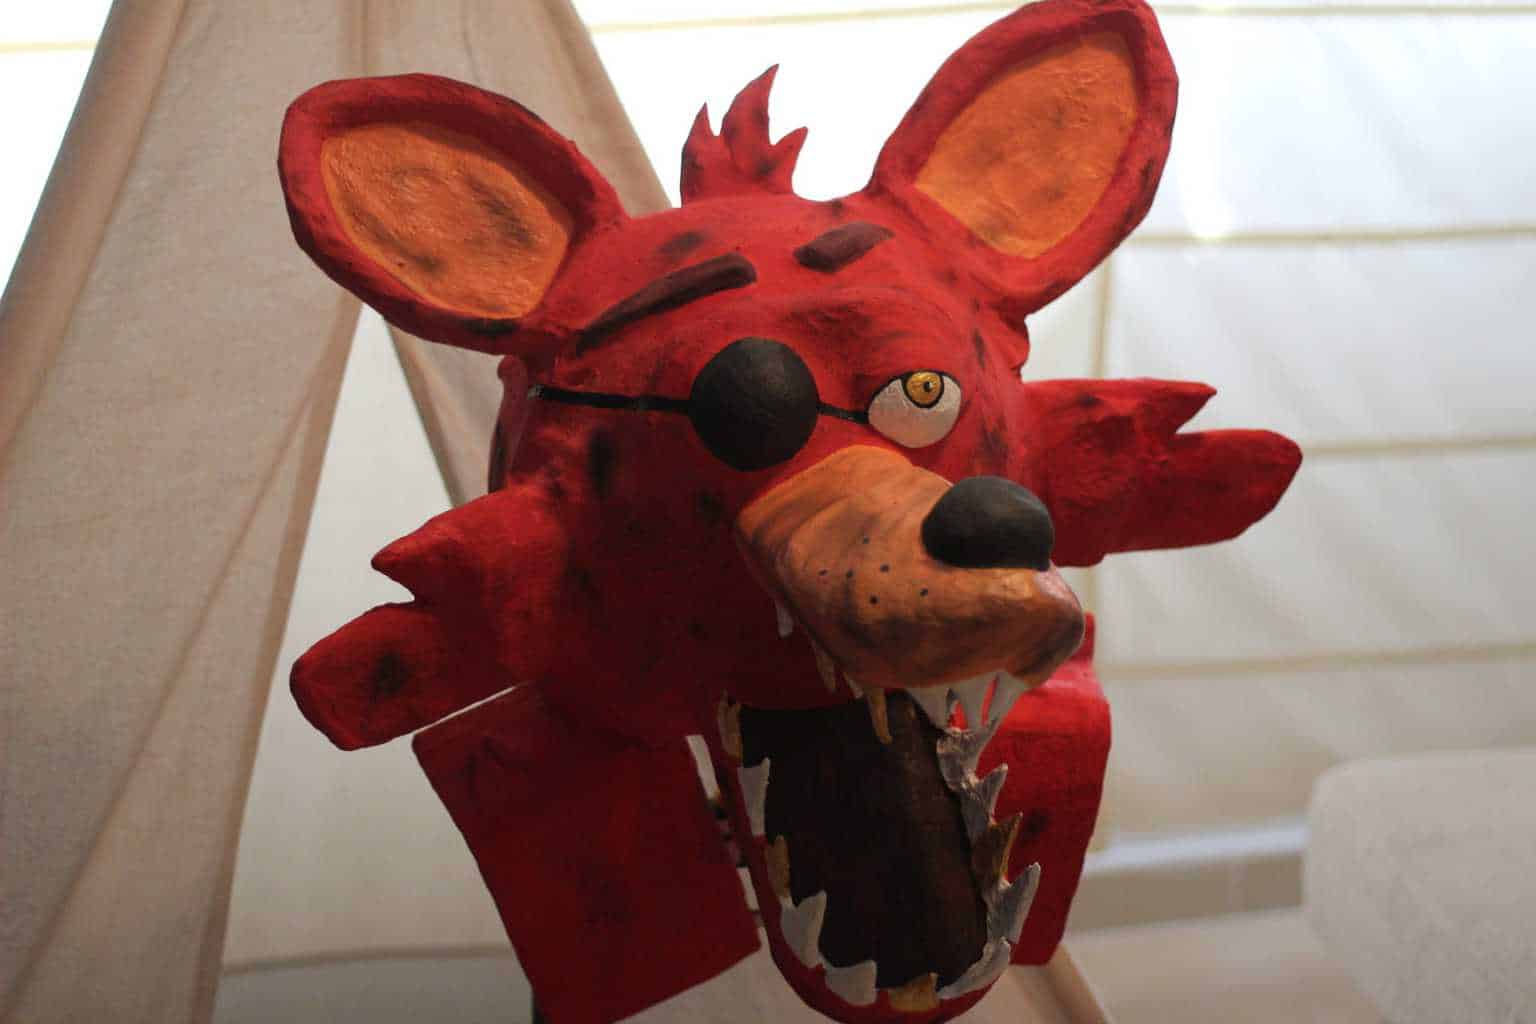 Foxy is an animatronic pirate fox